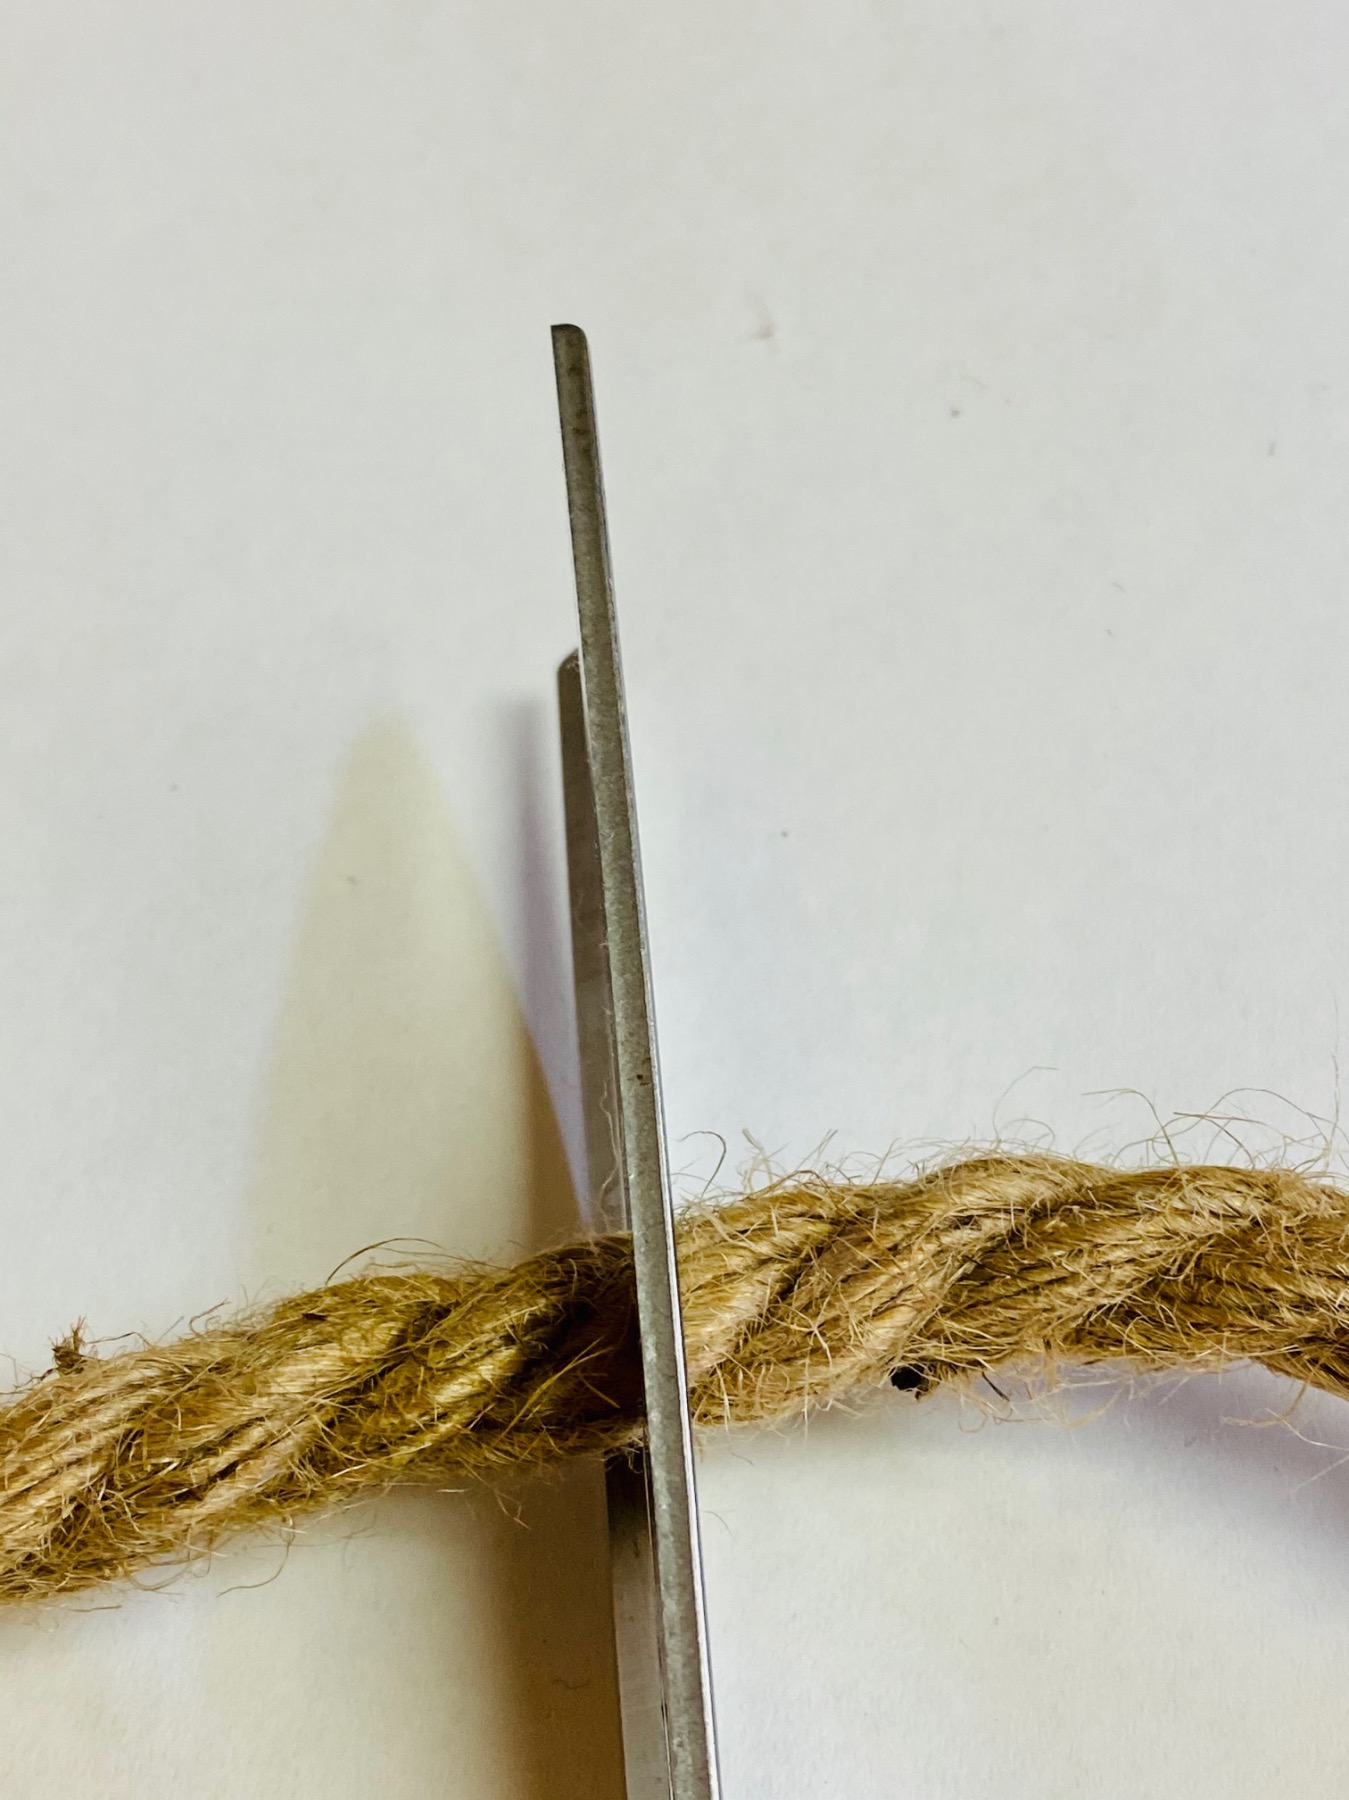 cut a section of rope to make the top of the beehive